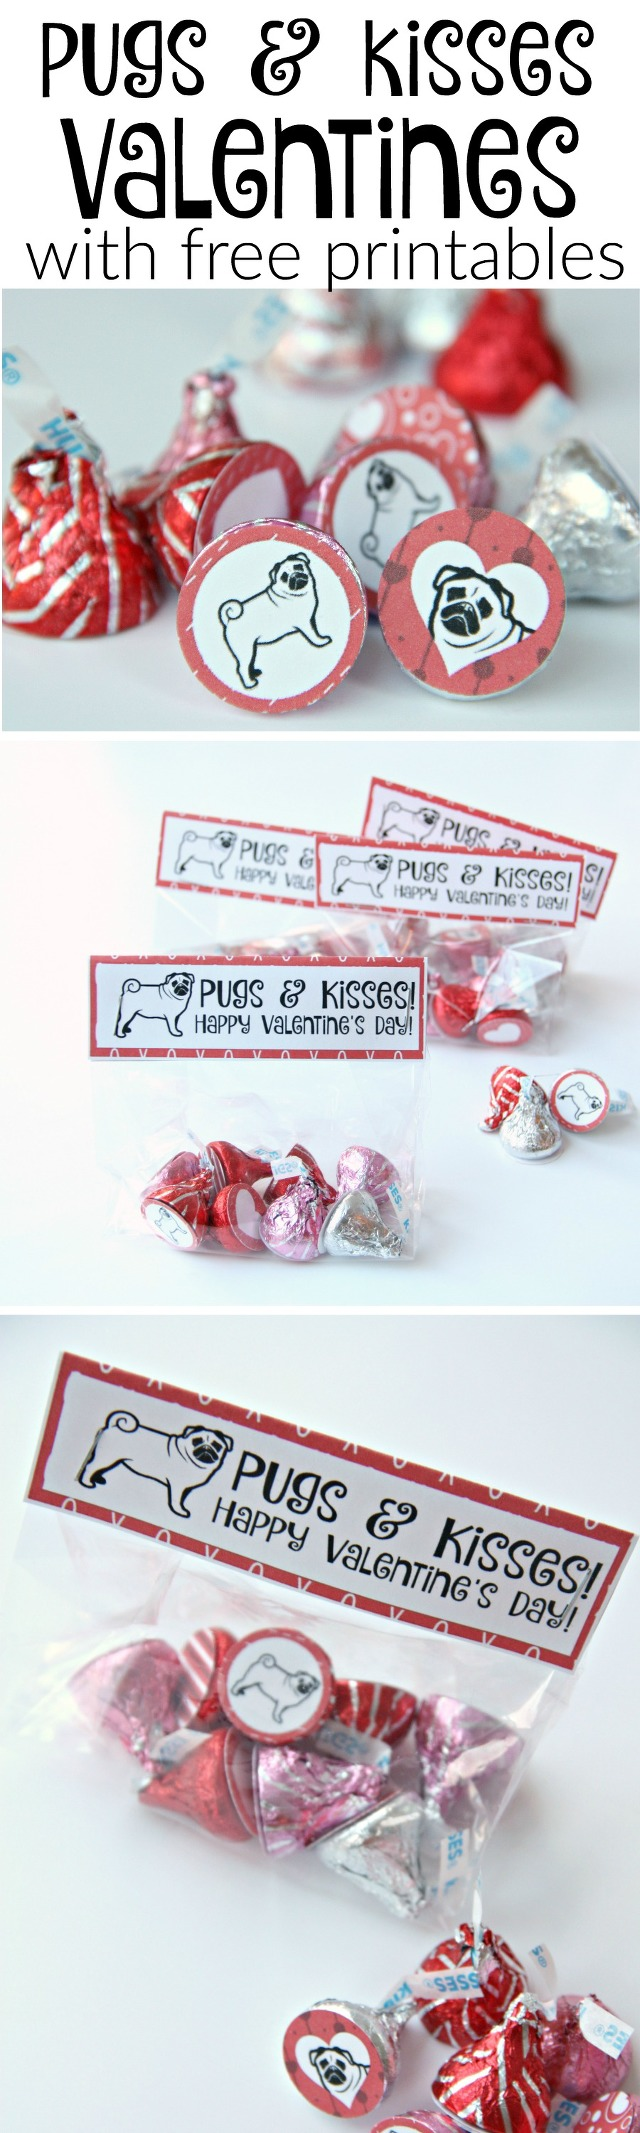 Pugs and Kisses Valentines with free printables for valentines and hershey